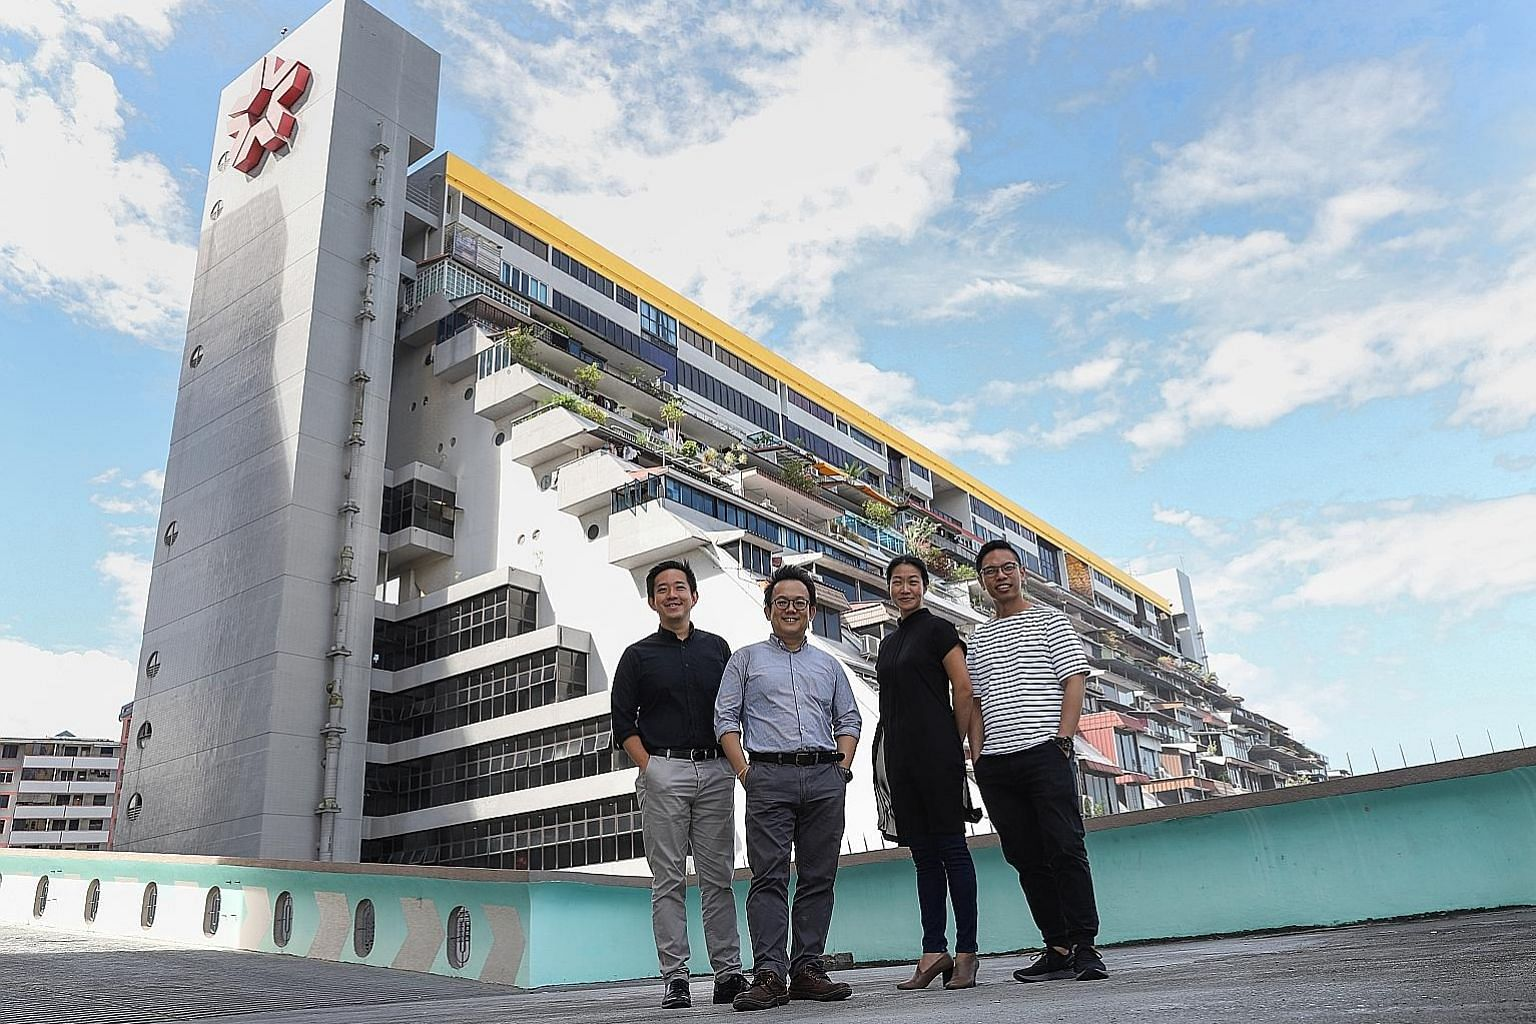 (From left) Engineer Colin Yip, conservation expert Ho Weng Hin, consultant Karen Tan and architect Jonathan Poh at the carpark of Golden Mile Tower, with Golden Mile Complex in the background. They are part of a group that is compiling the list of 5